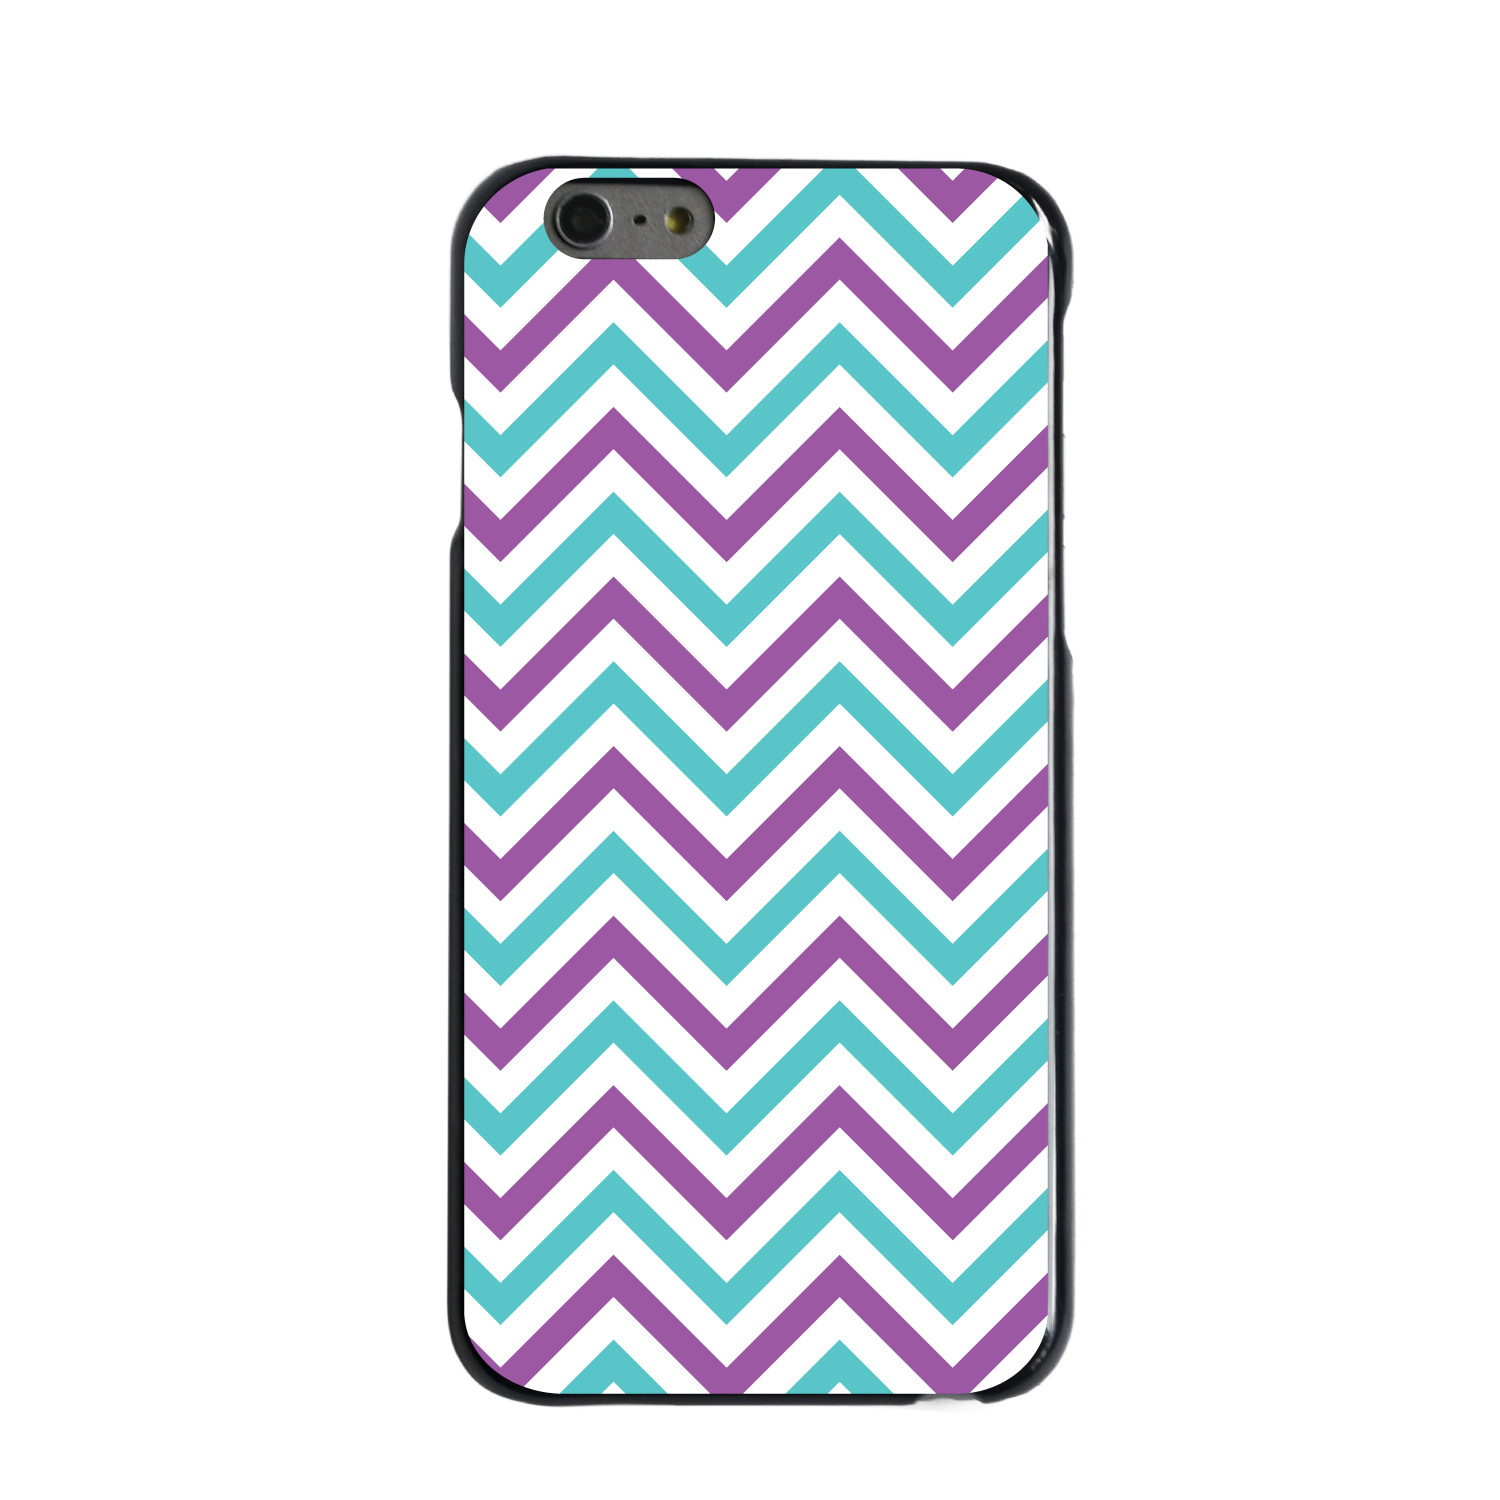 "CUSTOM Black Hard Plastic Snap-On Case for Apple iPhone 6 / 6S (4.7"" Screen) - Purple Teal Chevron Stripes"